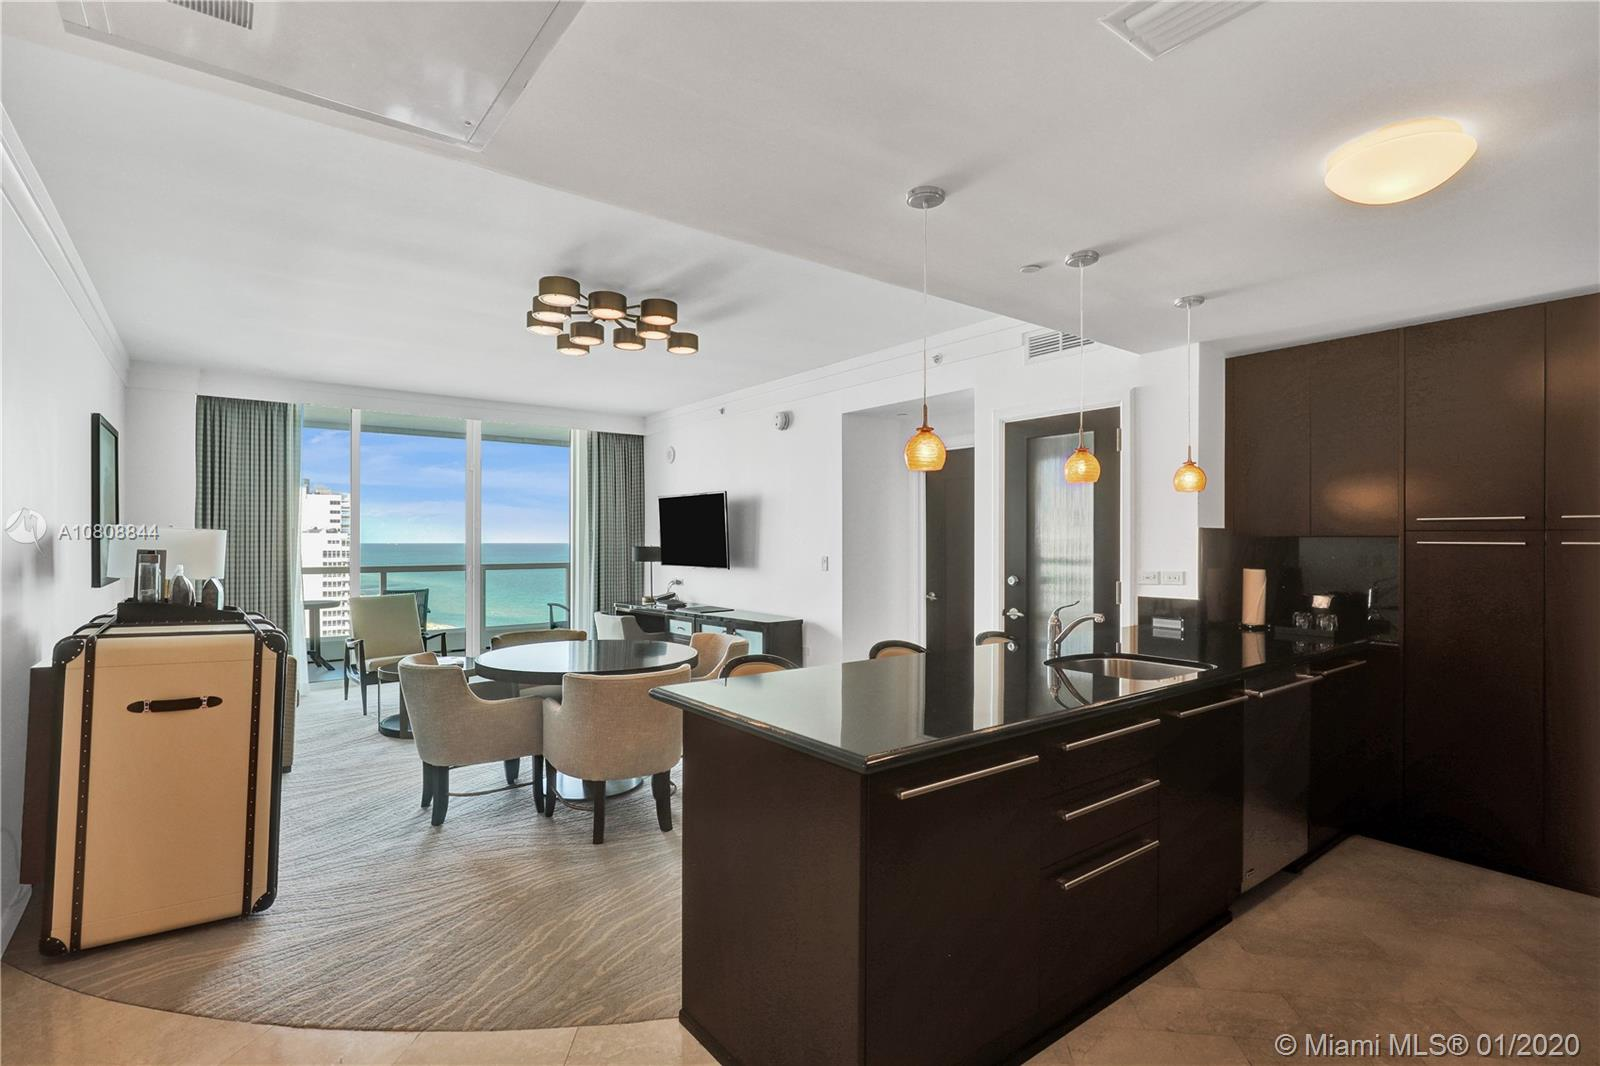 RECENTLY FULLY RENOVATED,BEAUTIFUL 1/1,5 BEDROOM AT WORLD FAMOUS FONTAINEBLEAU RESORT, OVERSIZED BALCONY OVERLOOKING TO THE OCEAN AND POOL.FULLY FURNISHED TUNKEY 2 FLAT TV'S,COMPUTER WITH DESK,SLEEPER SOFA,FULLY EQUIPPED KITCHEN, KITCHENWARE, DISHWASHER, WASHER&DRYER. FONTAINEBLEAU OFFERS 22 OCEANFRONT ACRES, MANY TOP RESTAURANTS AND NIGHTCLUBS, SPA, FITNESS CENTER.POOLS.MAINTENANCE FEES INCLUDED:AC,ELECTRICITY,FREE VALET,LOCAL PHONES AND COMPLIMENTARY BREAKFAST AT OWNERS LOUNGE. THERE WERE A LOT OF CELEBRITIES IN THIS LIST OF GUESTS WHO HAVE STAYED IN THIS SUITE BEFORE.DON'T MISS OUT THIS UNIQUE OPPORTUNITY TO PURCHASE ONE OF THE LAST EXCLUSIVE 1 BEDROOM SUITES IN FONTAINEBLEAU HOTEL MIAMI BEACH